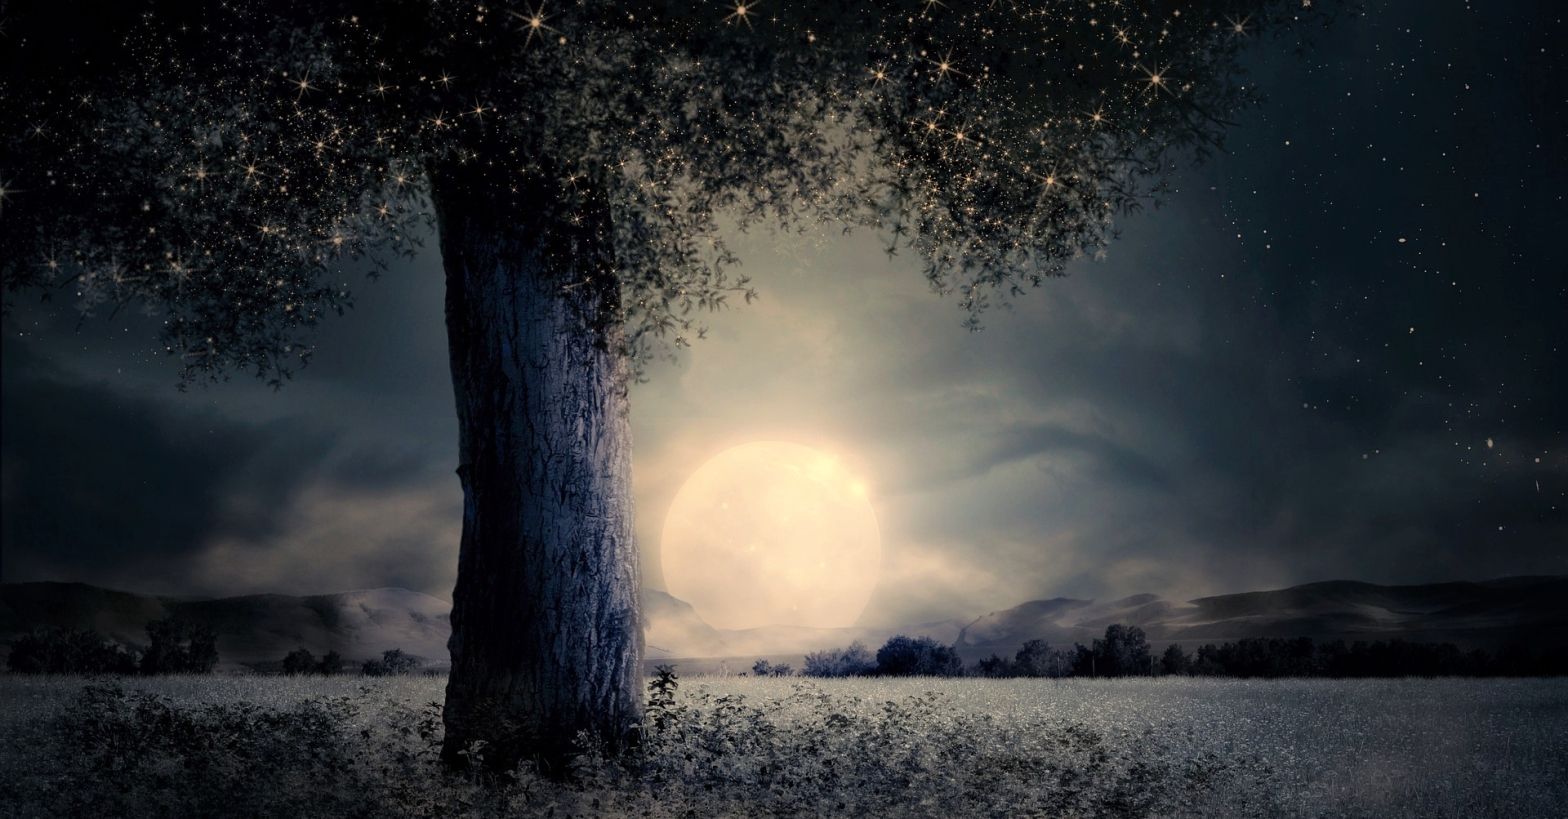 Poetry Poem The moon bright white full and large sinking so low close to the horizon, wispy cloudy night, a large tree close to you with twinkling sparkles amongst the leaves